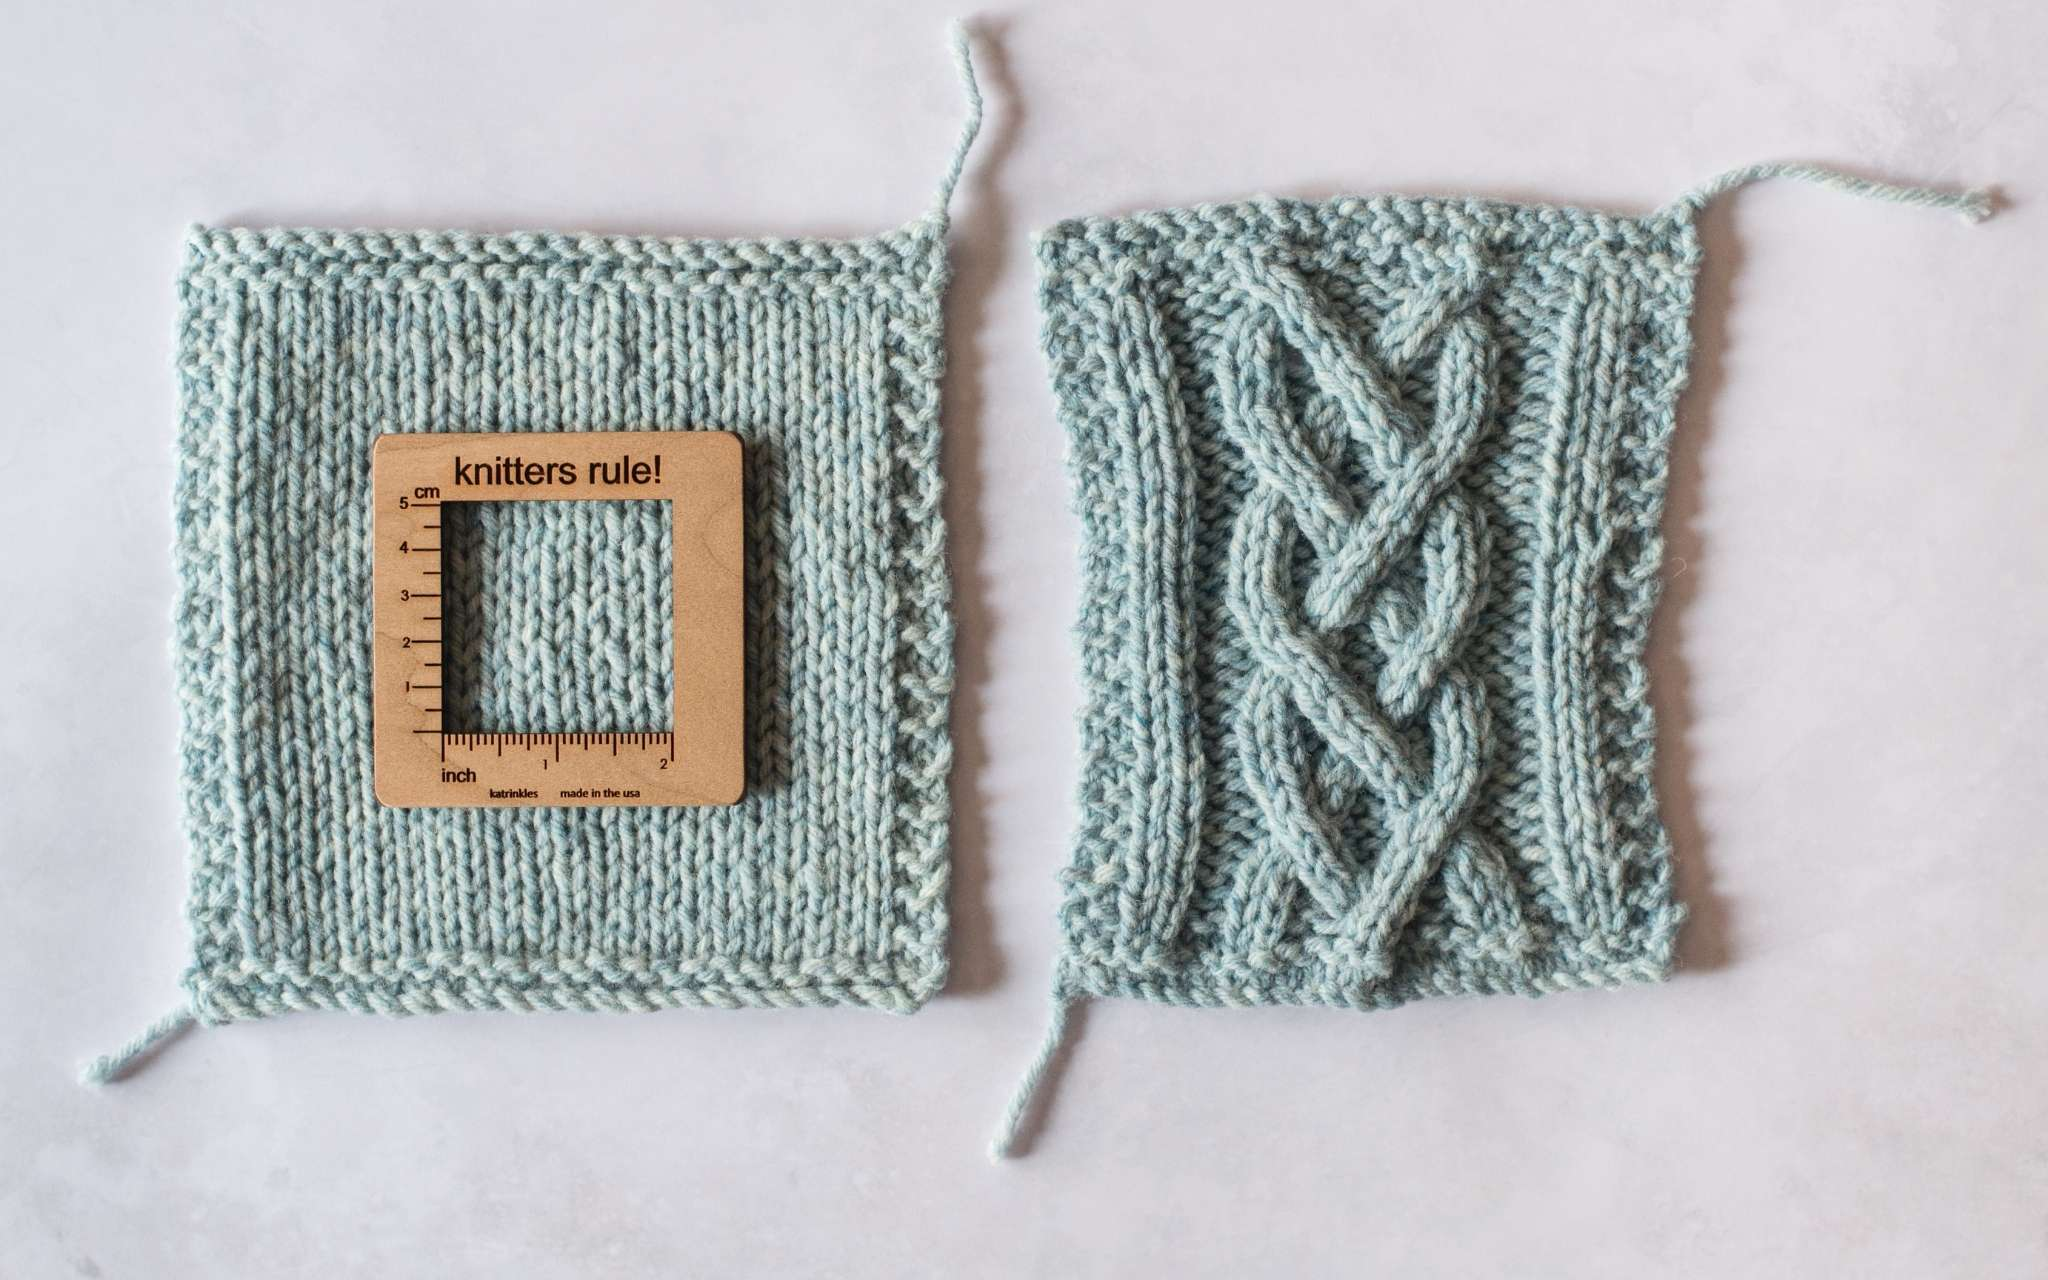 Two swatches lie next to each other. The left swatch has been knitted in stocking stitch and has a wooden measuring tool on top. The swatch in the right is in the same yarn but has been knitted in a more dense cabled pattern.